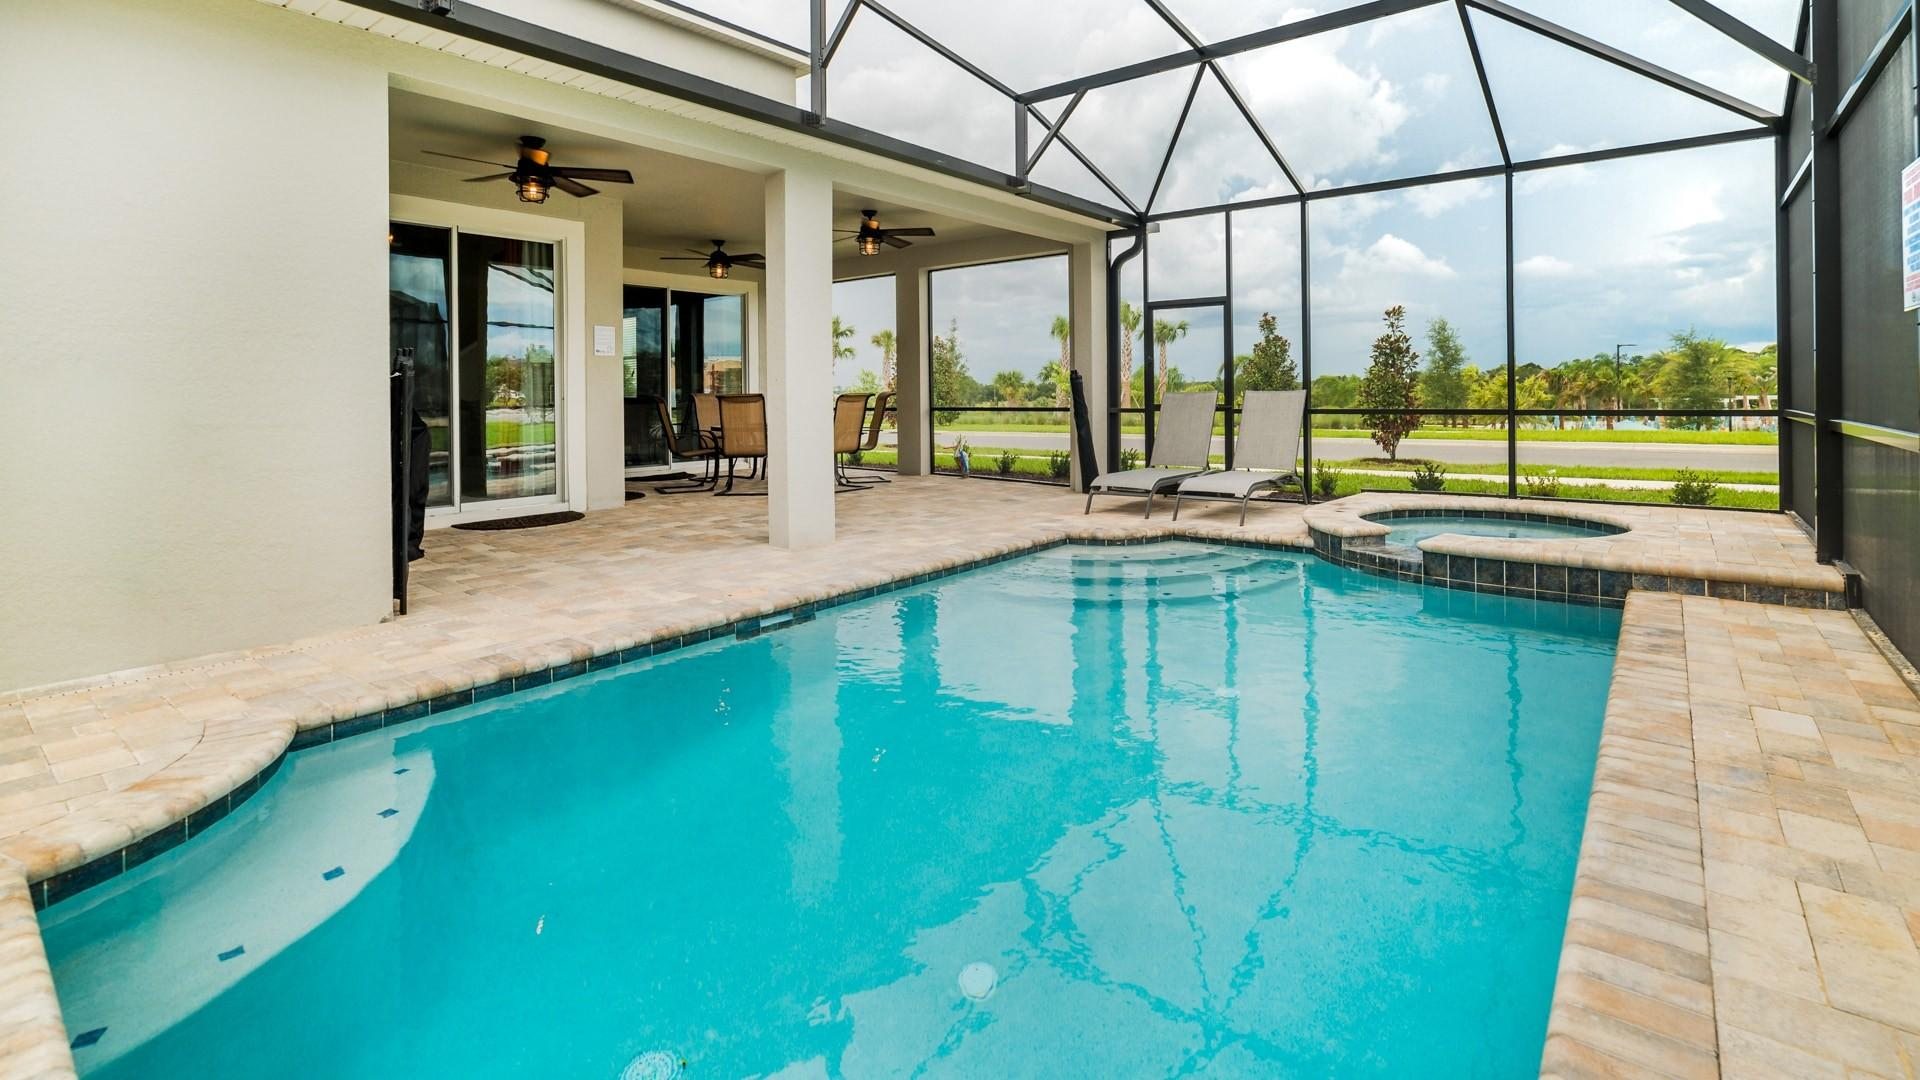 Property Image 2 - Spacious Home With Private Pool Across From Clubhouse